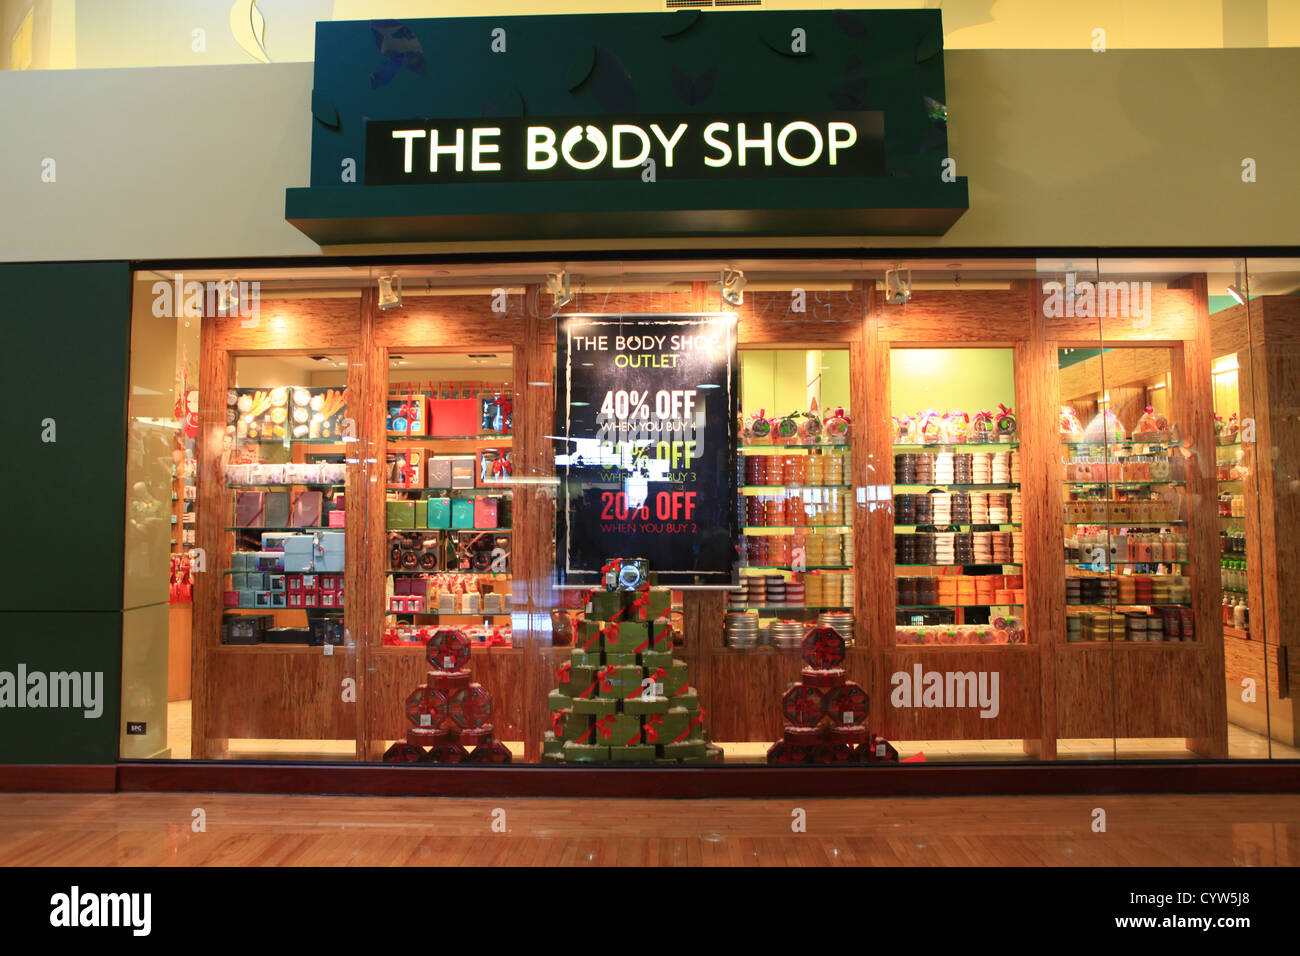 The Body Shop The Body Shop stores in Toronto - Hours, phones and locations Here you can find all the The Body Shop stores in Toronto. To access the details of the store (location, opening hours, The Body Shop online and current flyers) click on the location or the store name.